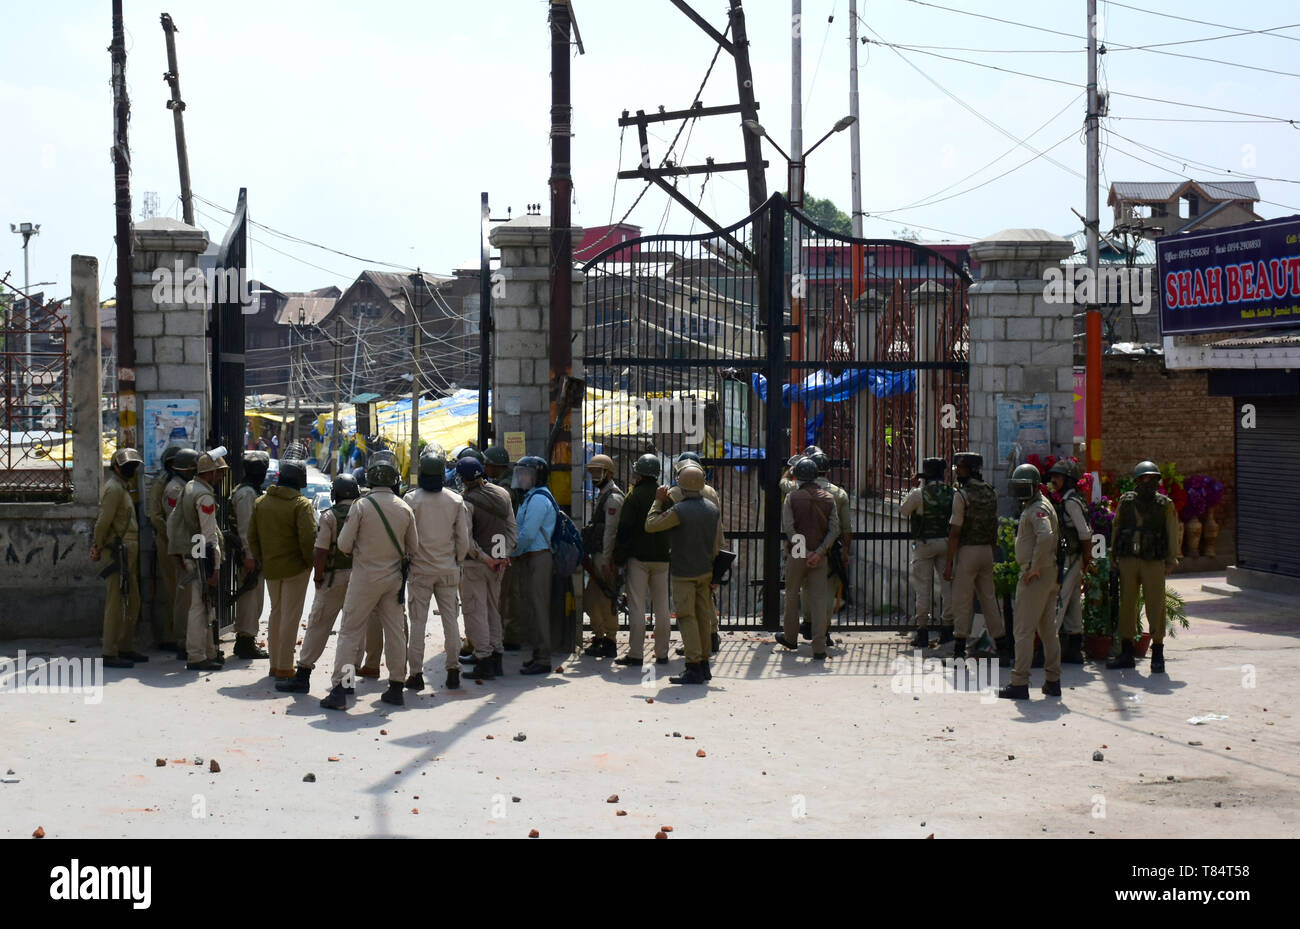 May 10, 2019 - Srinagar, Kashmir, 9 th May 2019. Hundreds of demonstrators clash with Indian government forces after the first Friday prayers of Ramadan outside the Jamia Masjid in Srinagar, in Indian Administered Kashmir. Some protesters shouted pro-freedom slogans, burnt the Indian flag, while others threw stones at Indian forces during the clashes outside the Jamia Masjid. Indian forces used teargas and pellets to disperse protesters and many demonstrators were injured during the clashes, six of whom seriously. Indian government forces arrested some of the protesters. The clashes occurred a - Stock Image